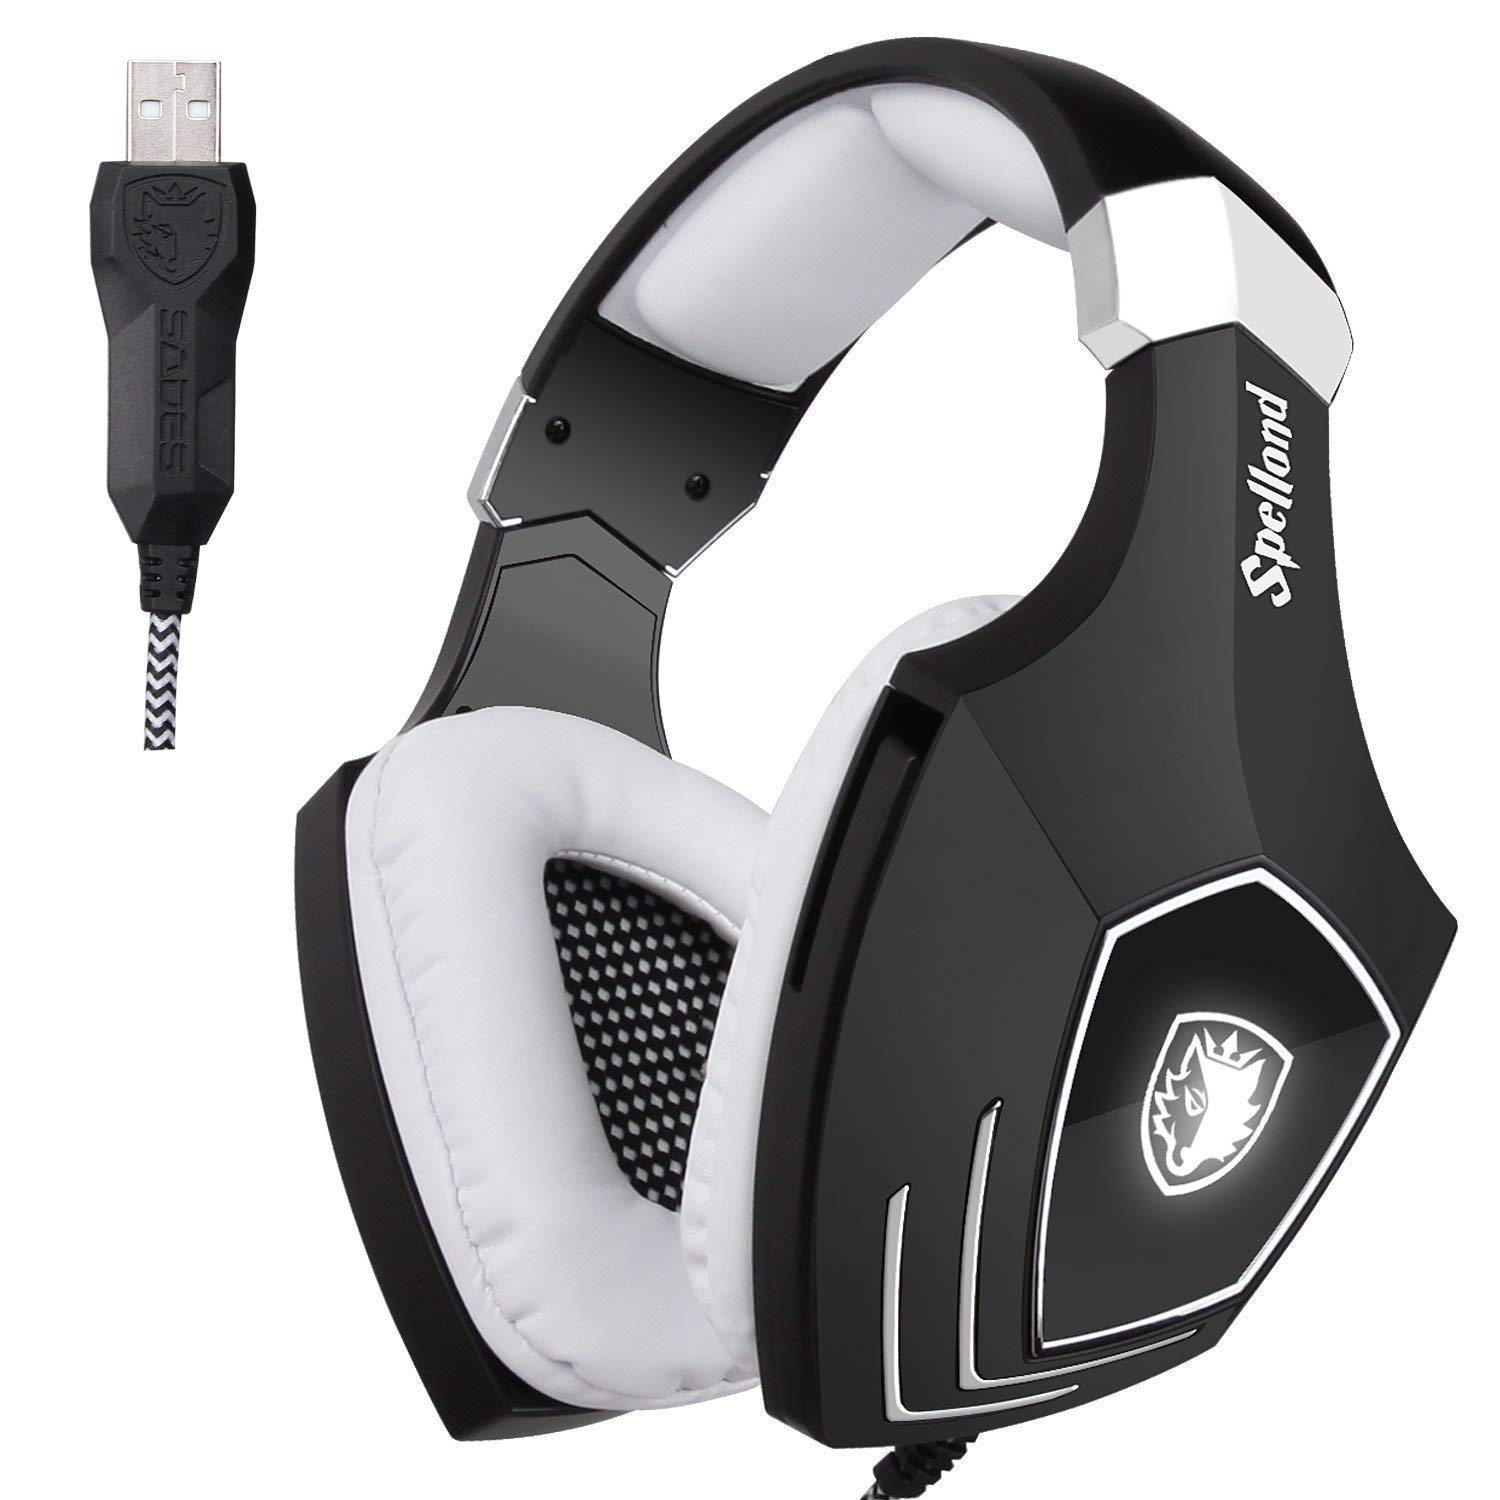 Sades OMG/A60S Stereo Surround USB Cuffia Gaming con Microfono Noise Cancelling Stereo Bass da Gioco Gamer LED Luce Regolatore di Volume per PC Mac Laptop Computer(Nero/ Bianco) SHENZHEN SADES DIGITAL TECHNOLOGY CO. LTD.